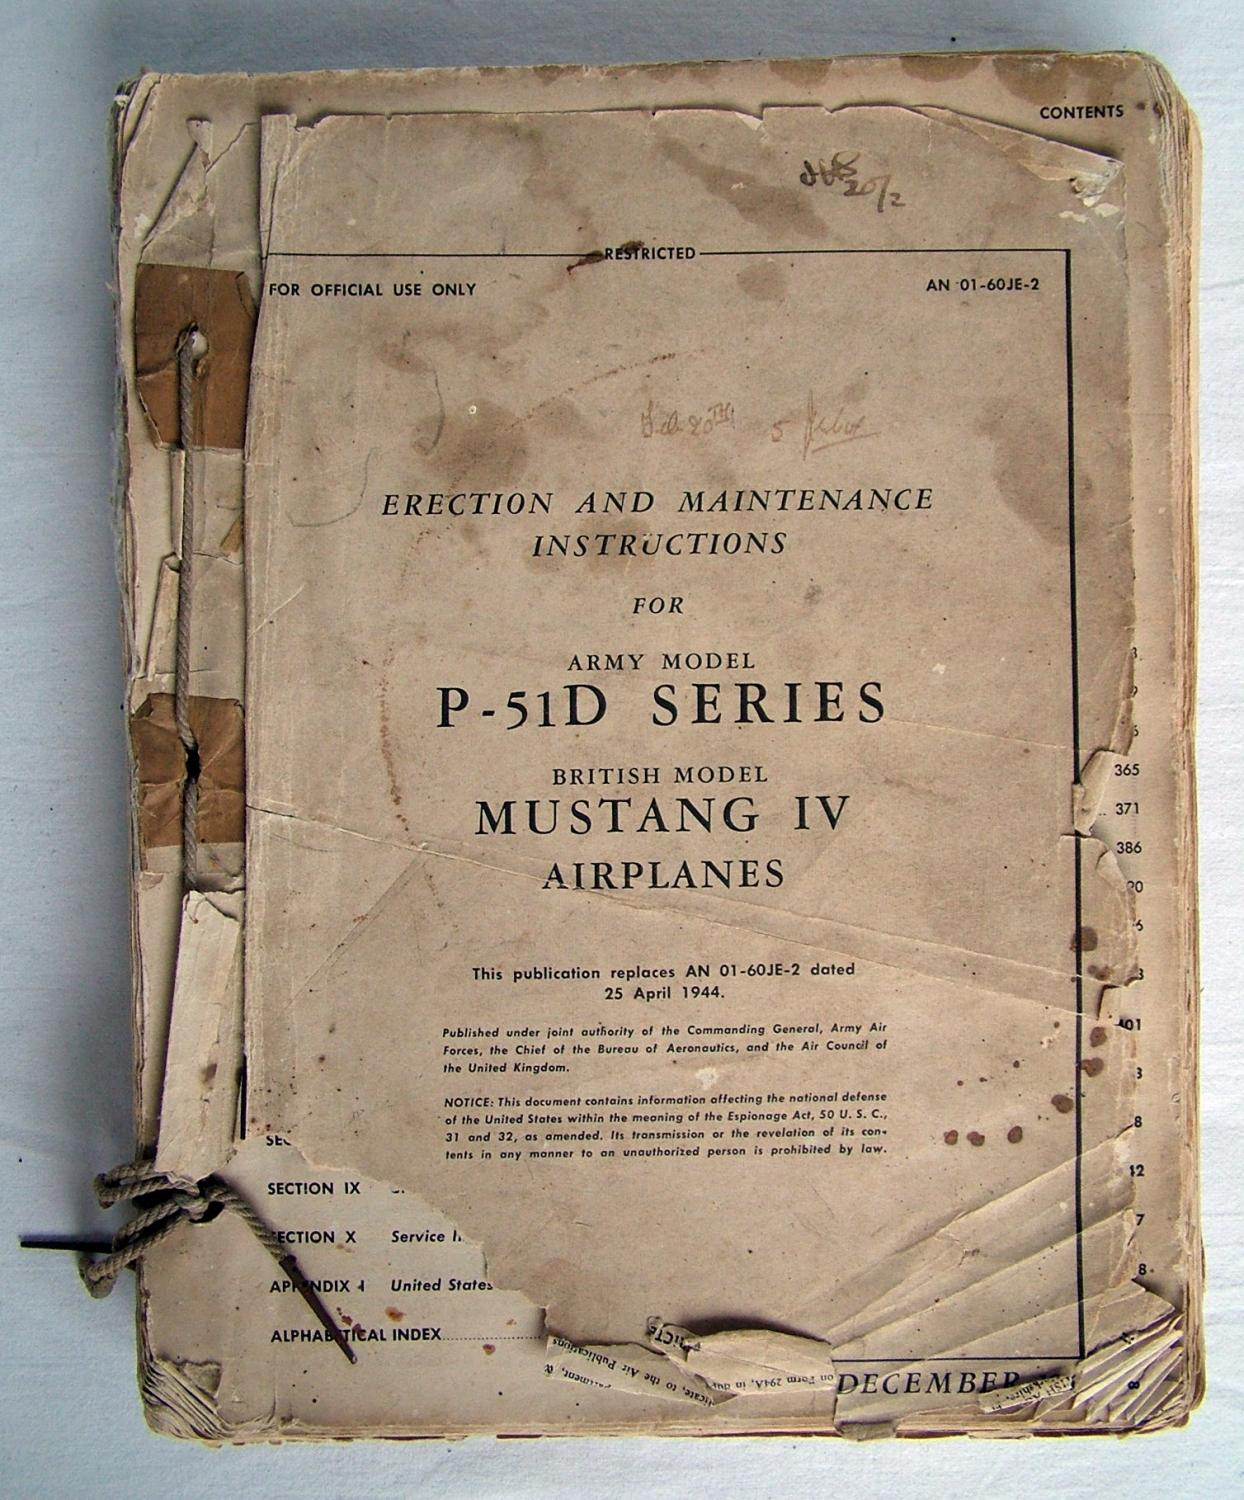 USAAF 'Mustang' IV Maintenance Manual